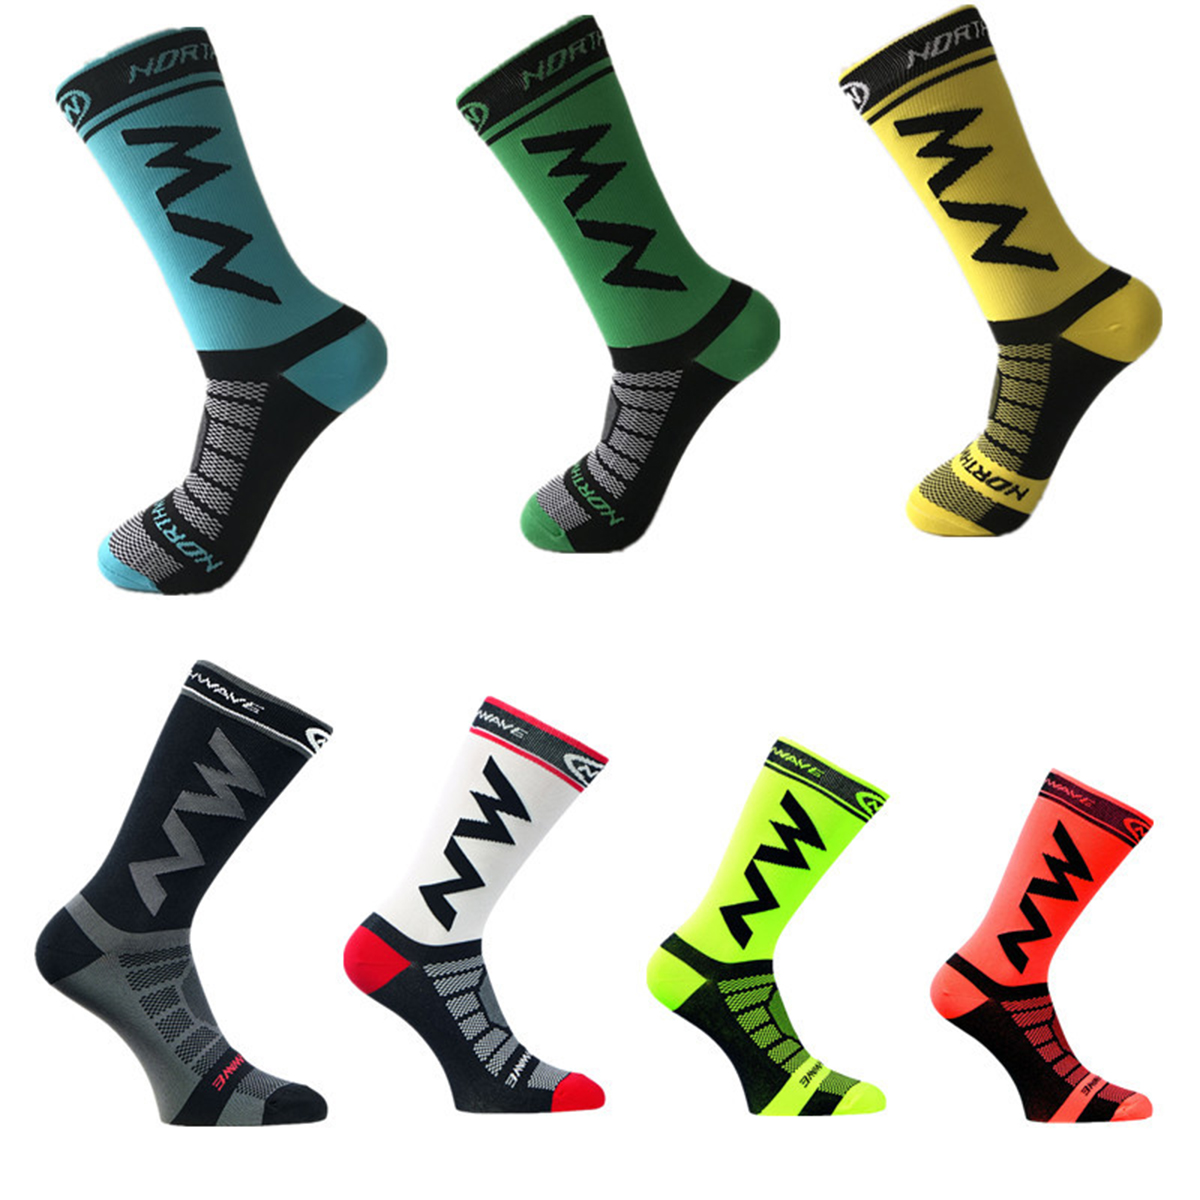 1Pair Sports Anti Slip Cycling Compression Stockings Unisex Brea